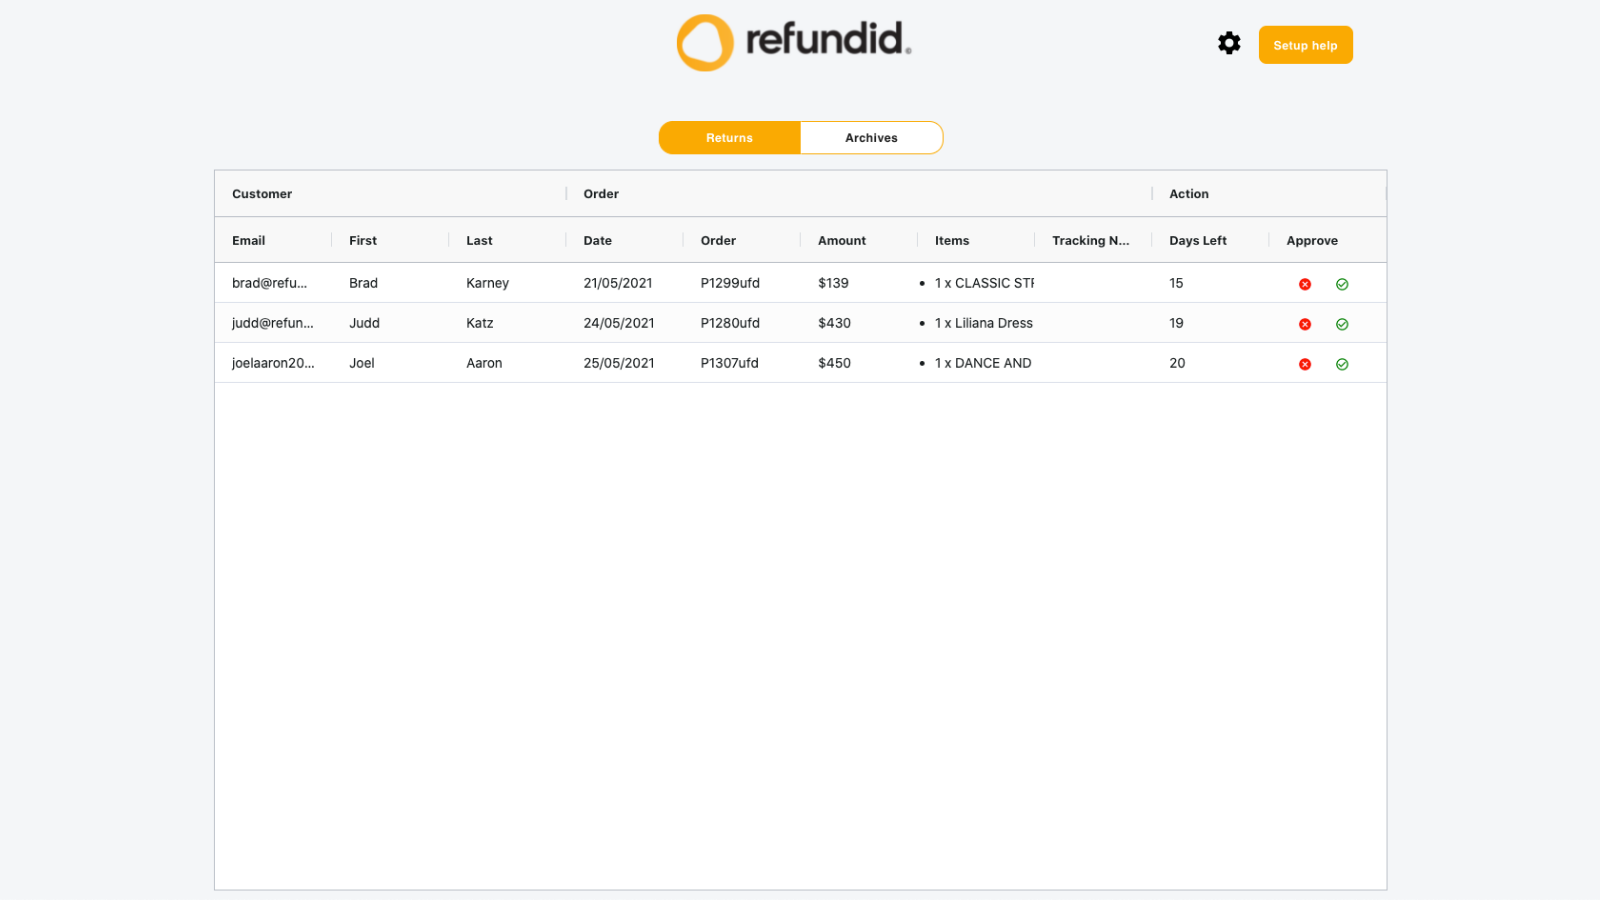 Easily view all incoming returns made through Refundid